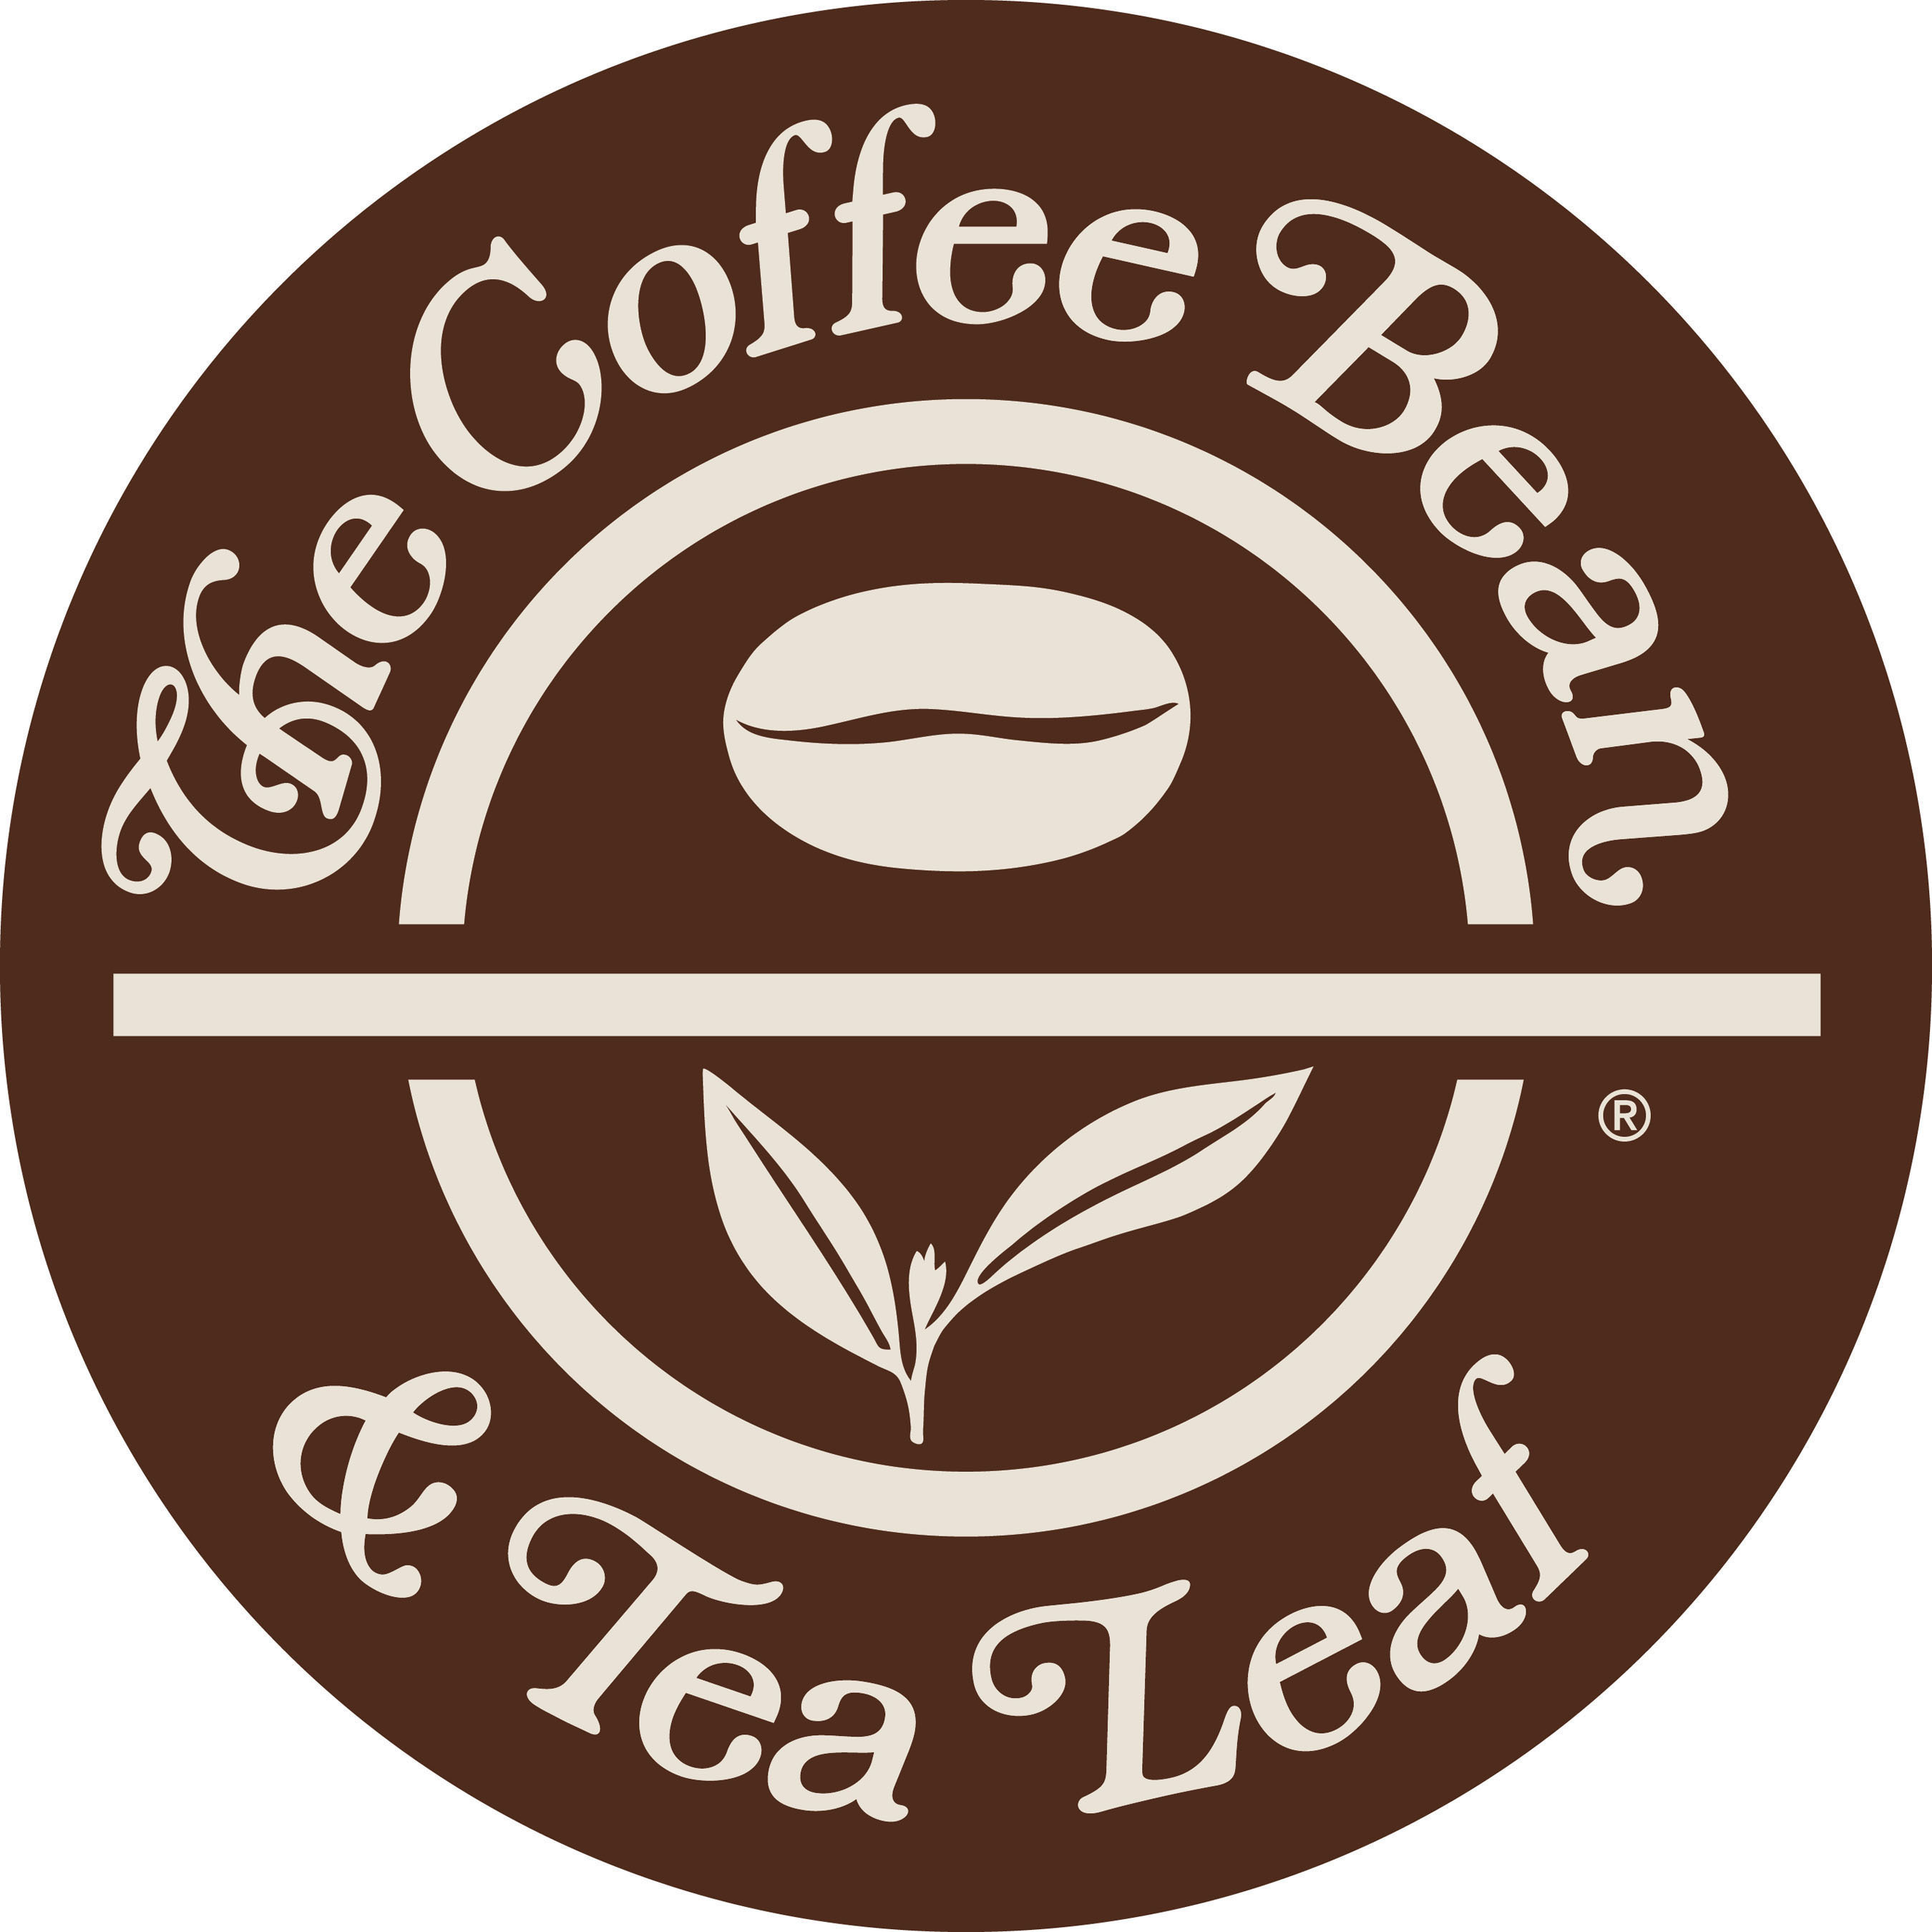 The Coffee Bean & Tea Leaf Logo.